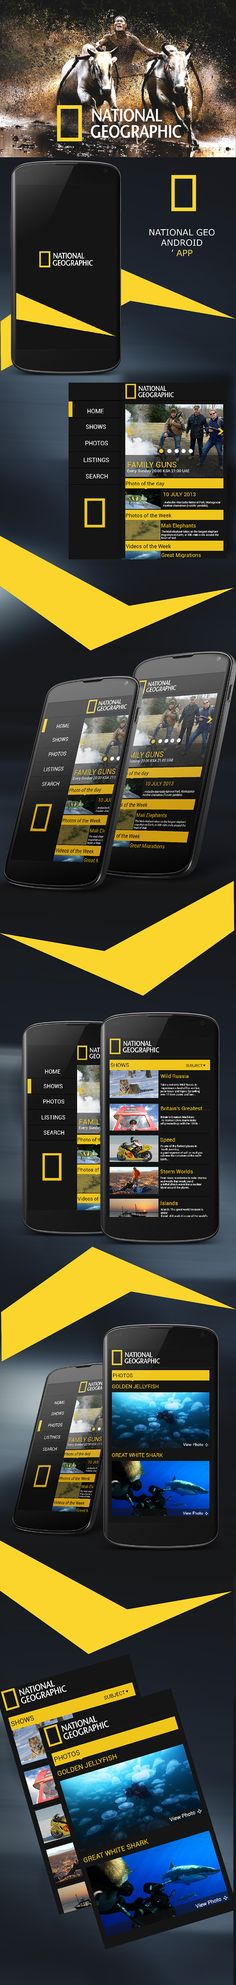 National Geographic Android App on Behance